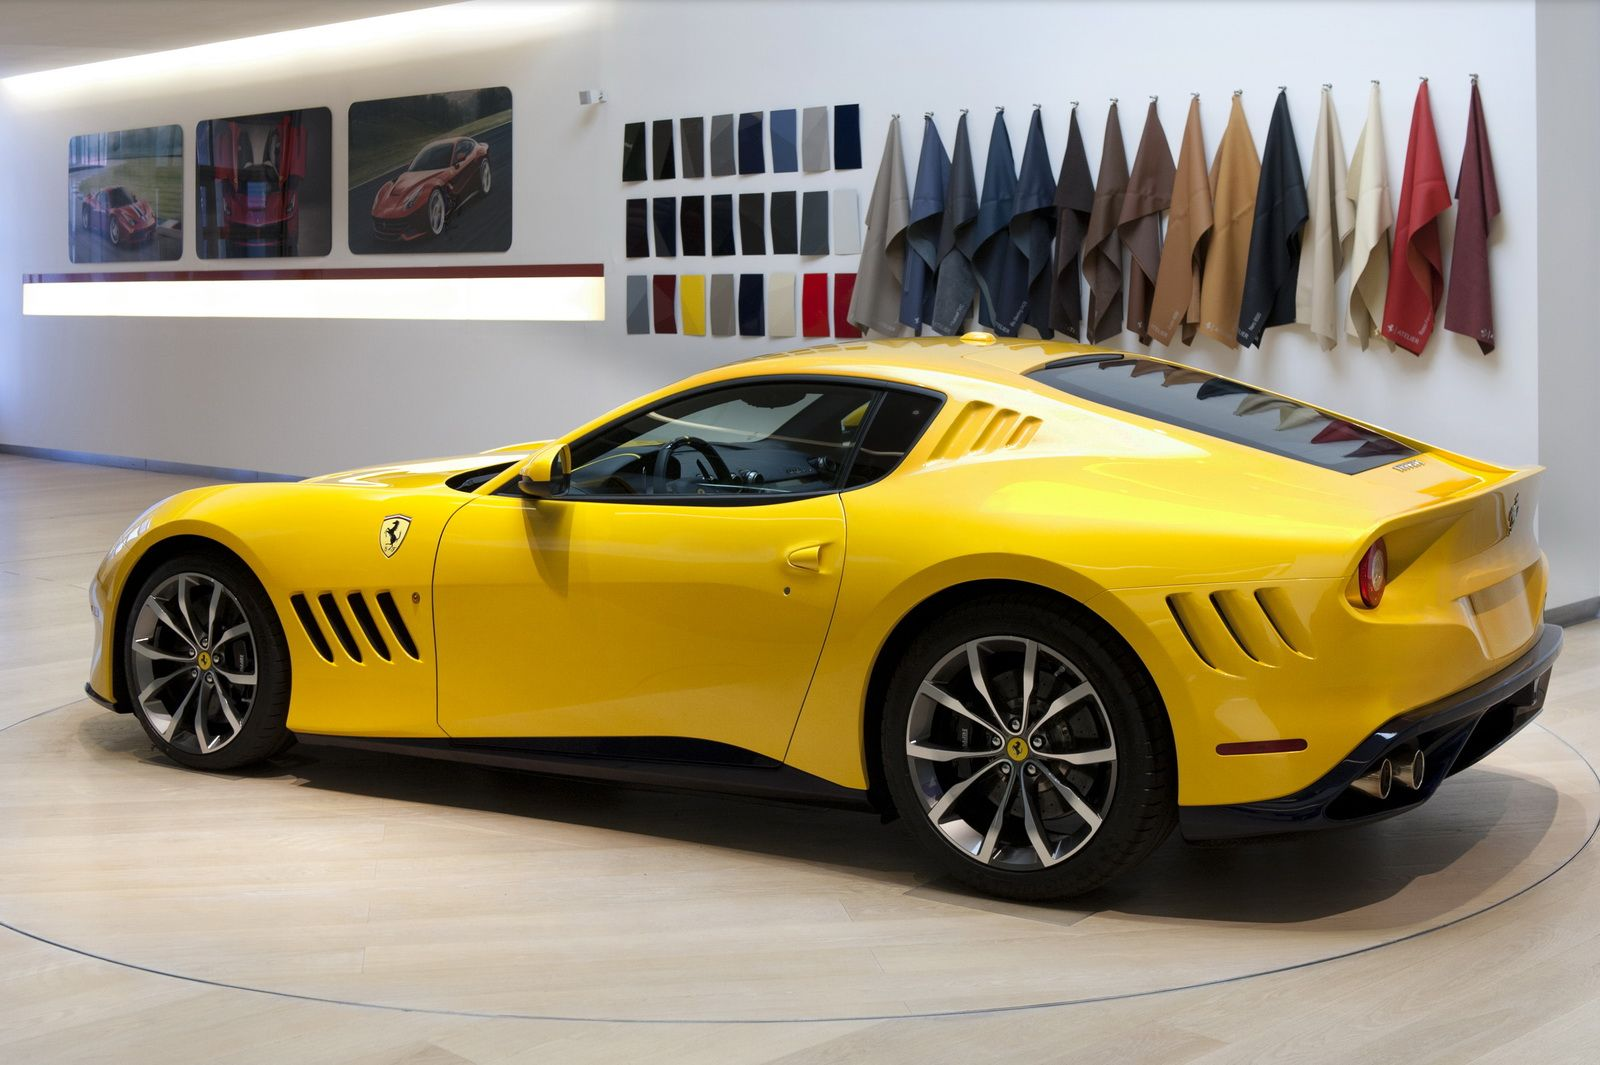 Ferrari Sp 275 Rw Competizione Officially Detailed Uses F12tdf S